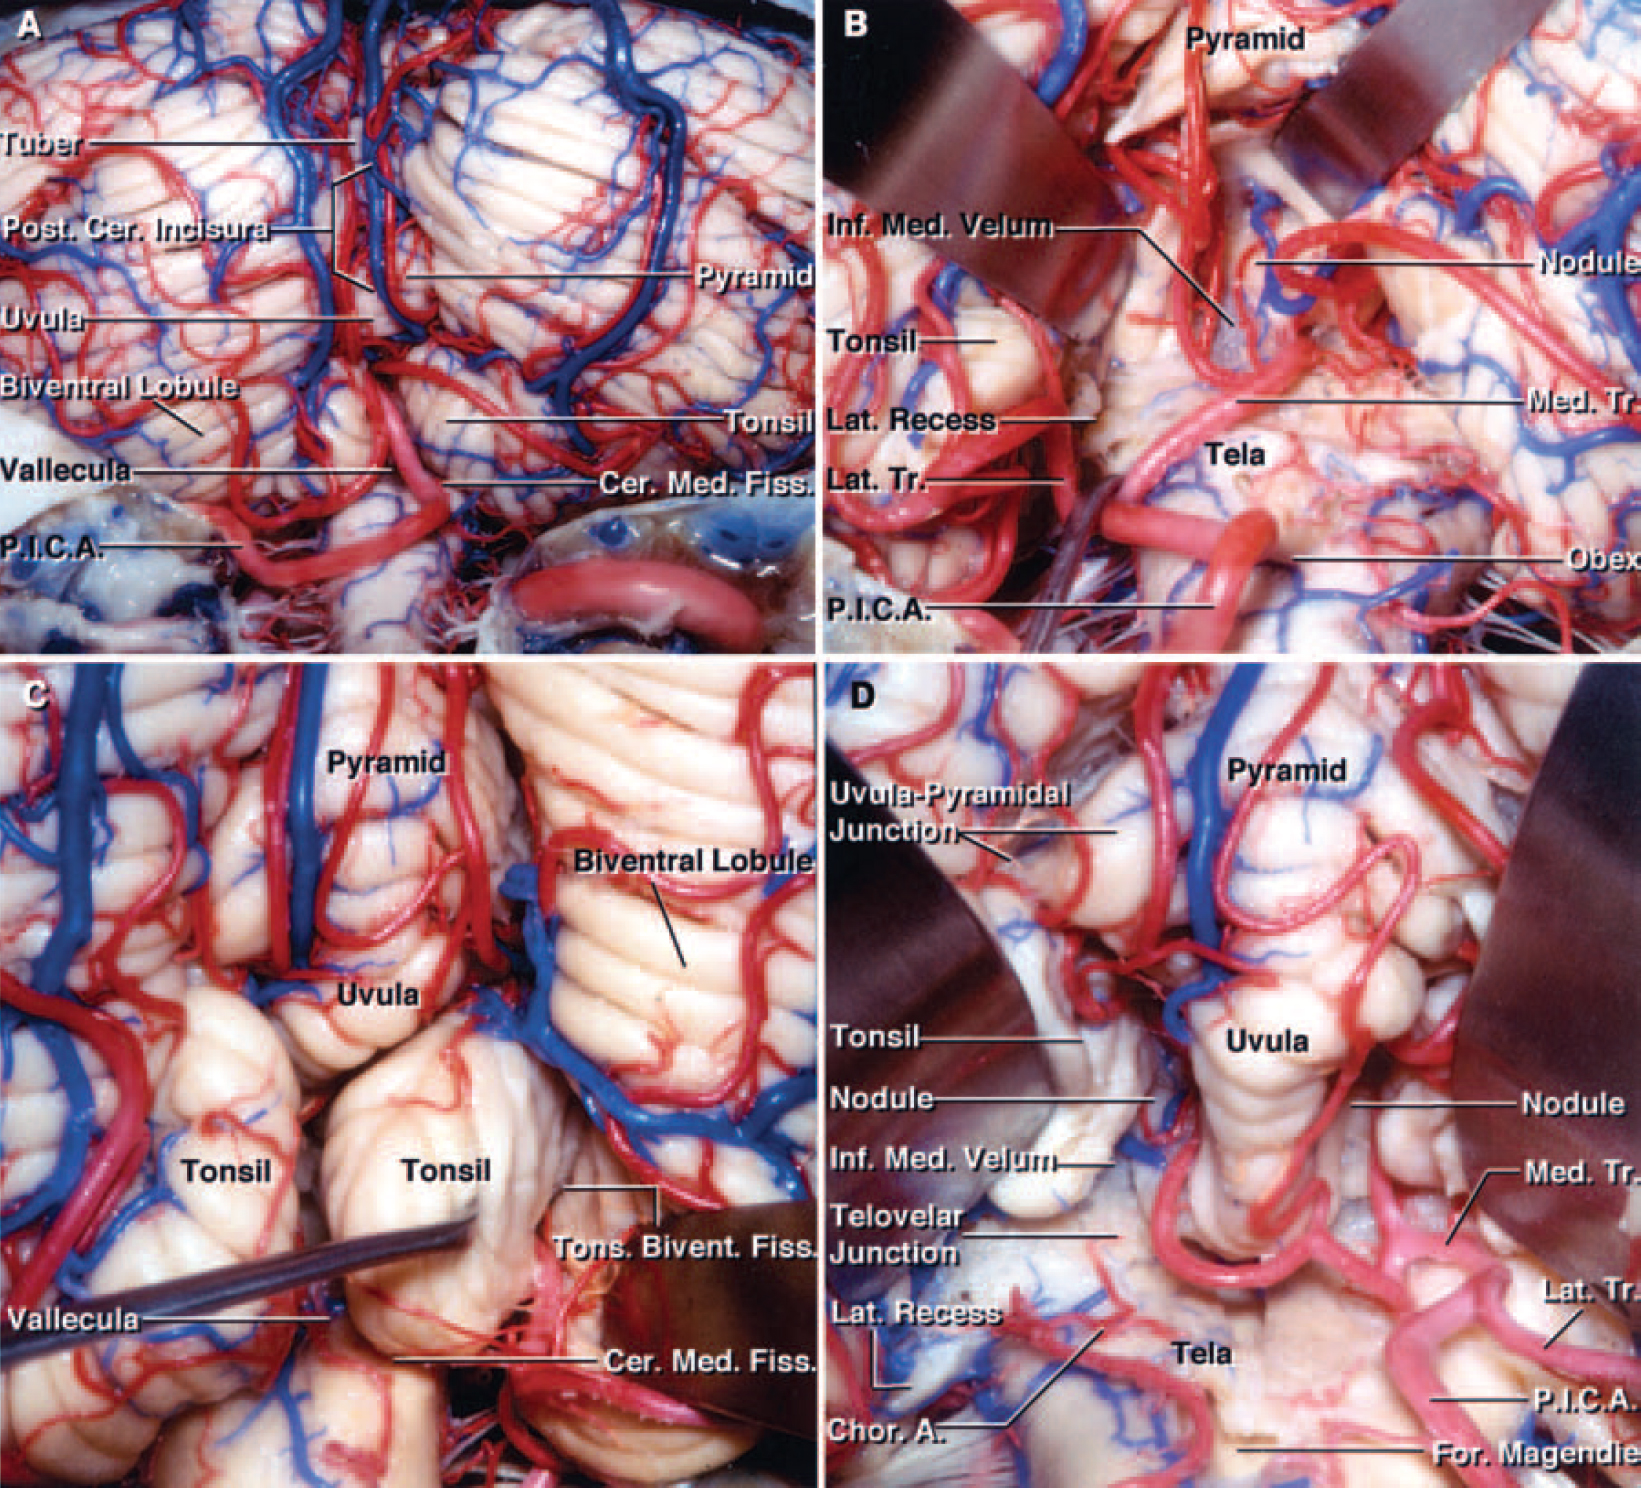 FIG. 1. Photographs demonstrating posterior views of cadaveric brain specimens. The suboccipital surface of the cerebellum and the cerebellomedullary fissure are shown. Panels A and B show one specimen and C and D another. A: The suboccipital surface is located below and between the sigmoid and transverse sinuses and is the surface exposed during a wide bilateral suboccipital craniotomy. The vermis sits in a depression, the posterior cerebellar incisura that lies between the hemispherical surfaces. The cerebellomedullary fissure extends superiorly between the cerebellum and the medulla oblongata. The vallecula extends upward between the tonsils and communicates through the foramen of Magendie with the fourth ventricle. The left PICA courses below the lower pole of the tonsil to reach the lower margin of the cerebellomedullary fissure and supplies part of the suboccipital surface. B: The left tonsil has been retracted laterally and the uvula medially to expose the inferior portion of the roof of the fourth ventricle. The inferior portion of the roof is formed by the tela choroidea and the inferior medullary velum. The bifurcation of the PICA into the medial and lateral trunks has been retracted to show the lateral recess. Some branches of the medial trunk, which supplies the vermis, course along the uvulotonsillar space along with the vein of the cerebellomedullary fissure. C: The right tonsil has been retracted medially from the biventral lobule. The tonsils, the most prominent structures blocking access to the caudal portion of the fourth ventricle, are attached to the cerebellar hemisphere along their superolateral borders. The fissure between the tonsil and the biventral lobule is called the tonsillobiventral fissure. D: Enlarged posterior view of the same hemisphere. Both tonsils have been retracted laterally to expose the inferior medullary velum and the tela choroidea. The choroidal arteries course along the tela choroidea, from which the choroid plexus projec